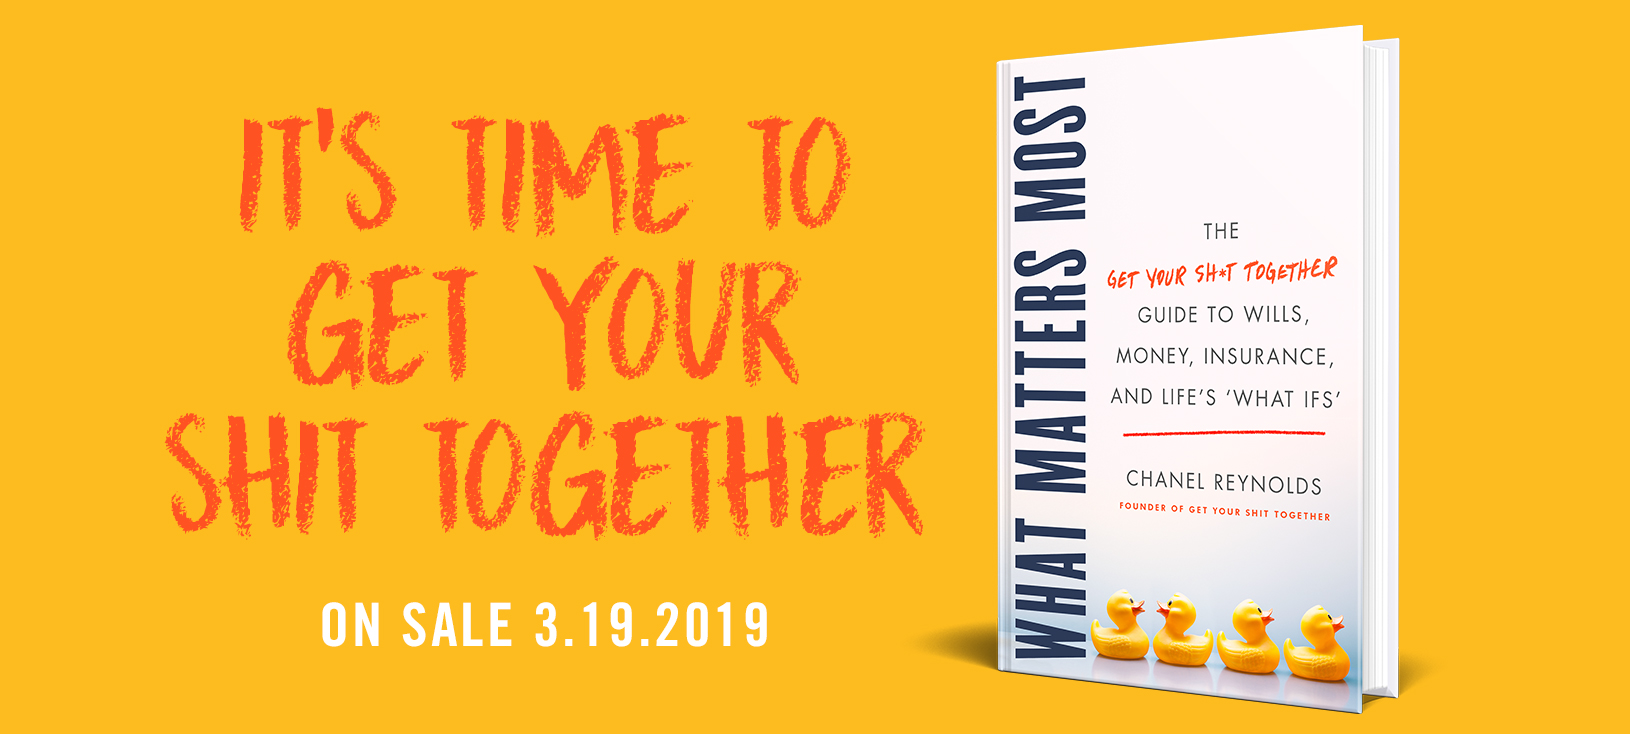 What Matters Most: The Get Your Shit Together Guide to Wills, Money, Insurance and Life's What-Ifs by Chanel Reynolds Book Cover image